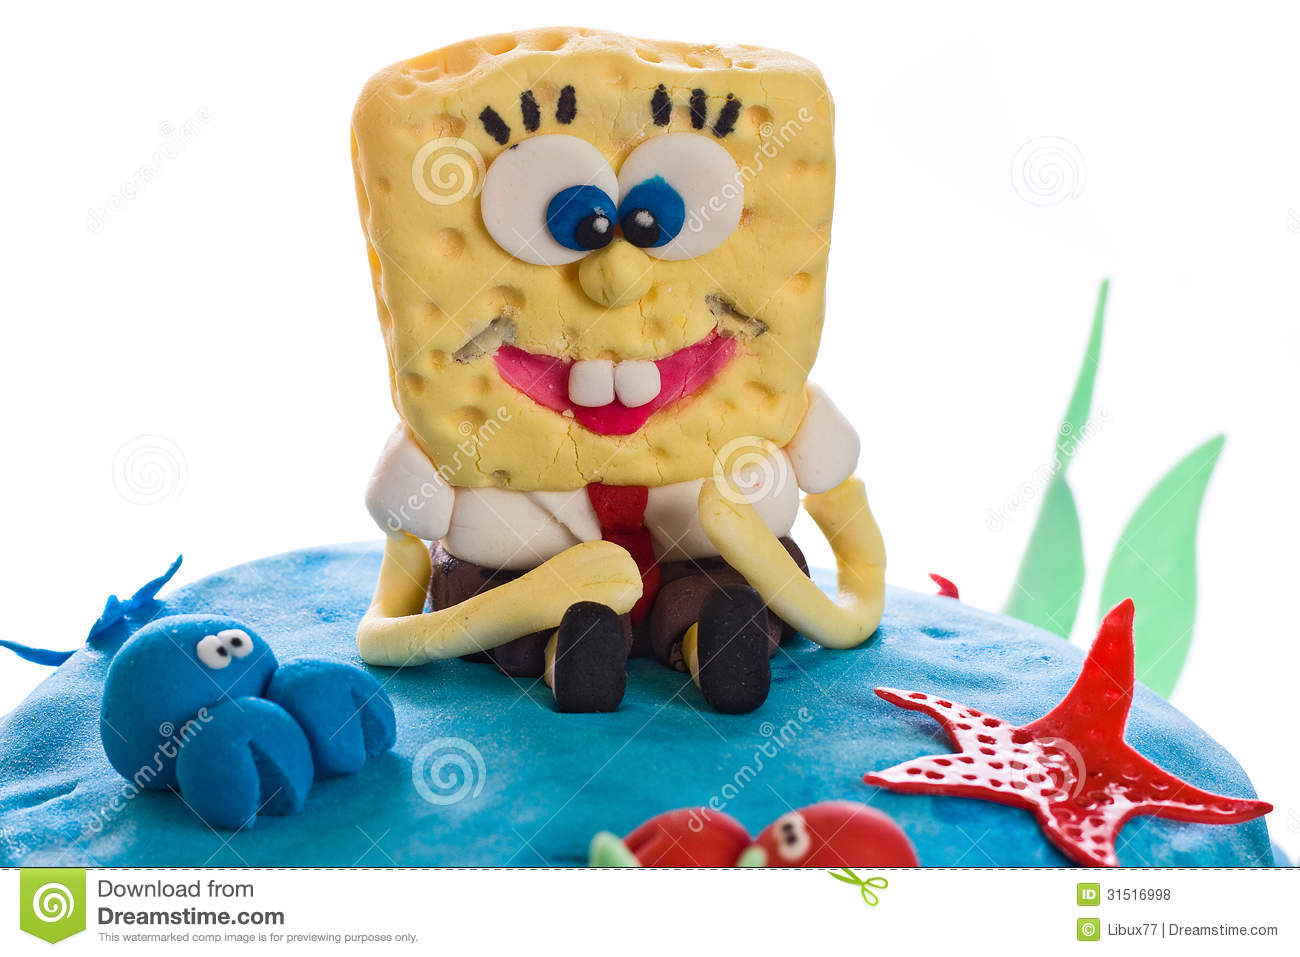 Pin 2d Spongebob Cake Cmny Cakes Cake On Pinterest